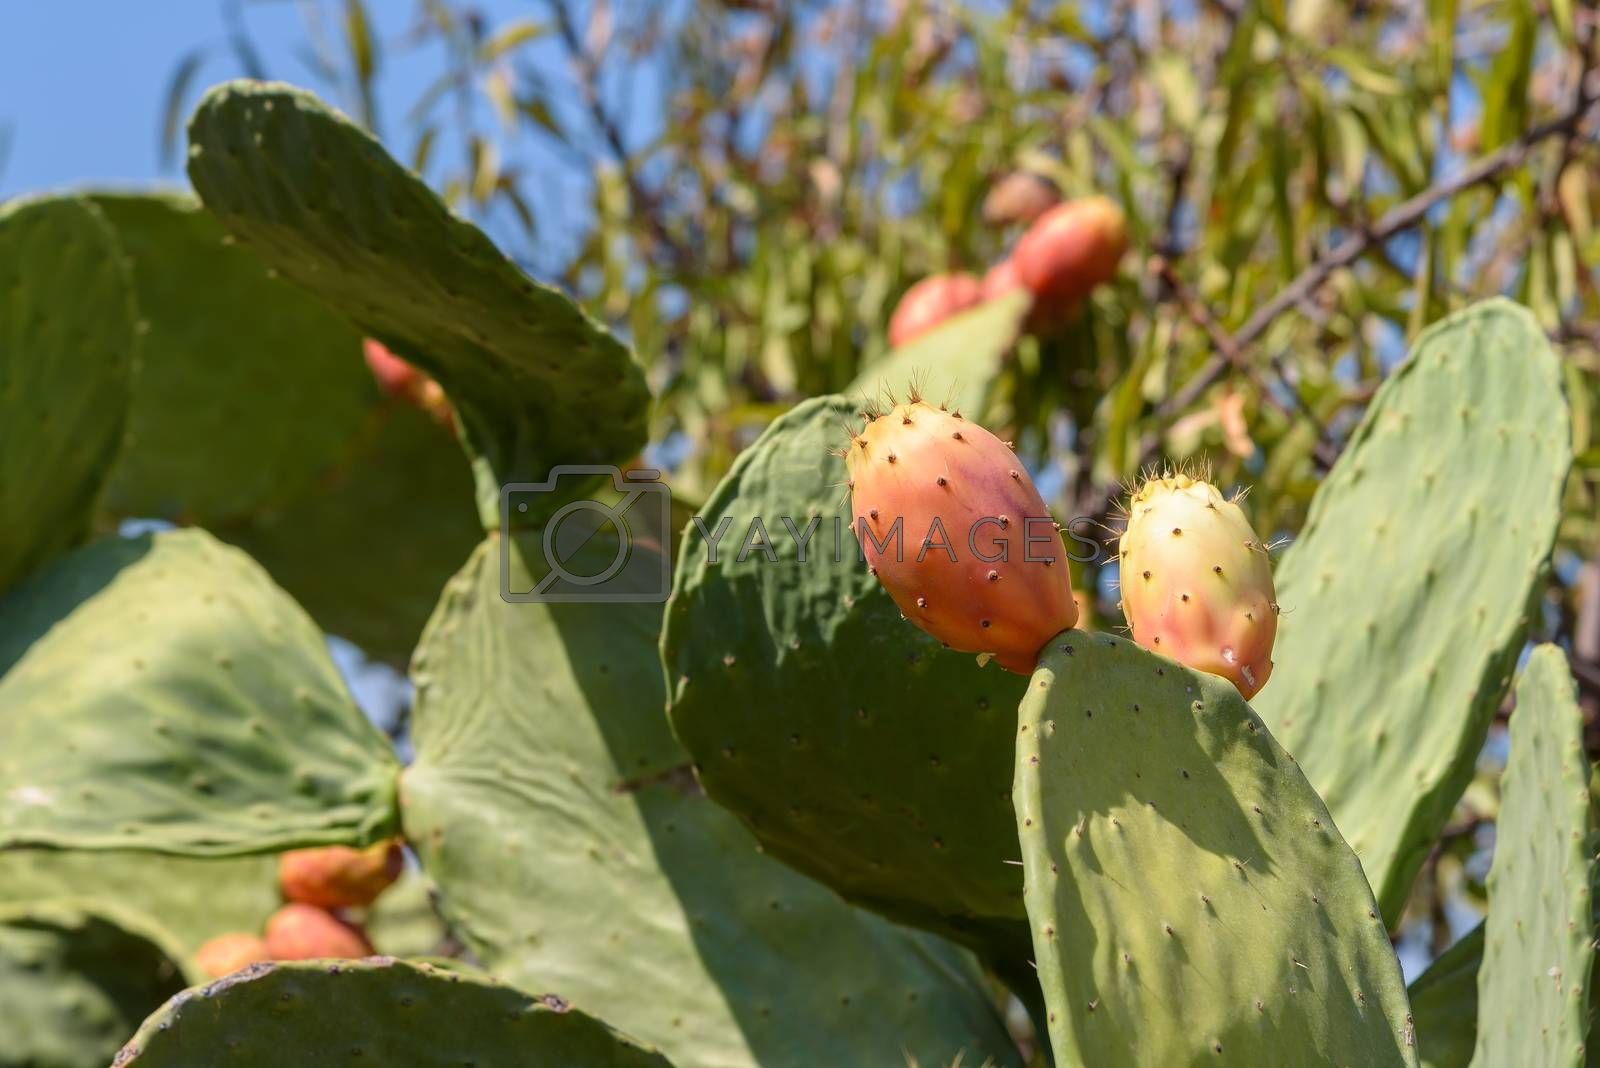 Prickly pear on a cactus plant ripening in the sun